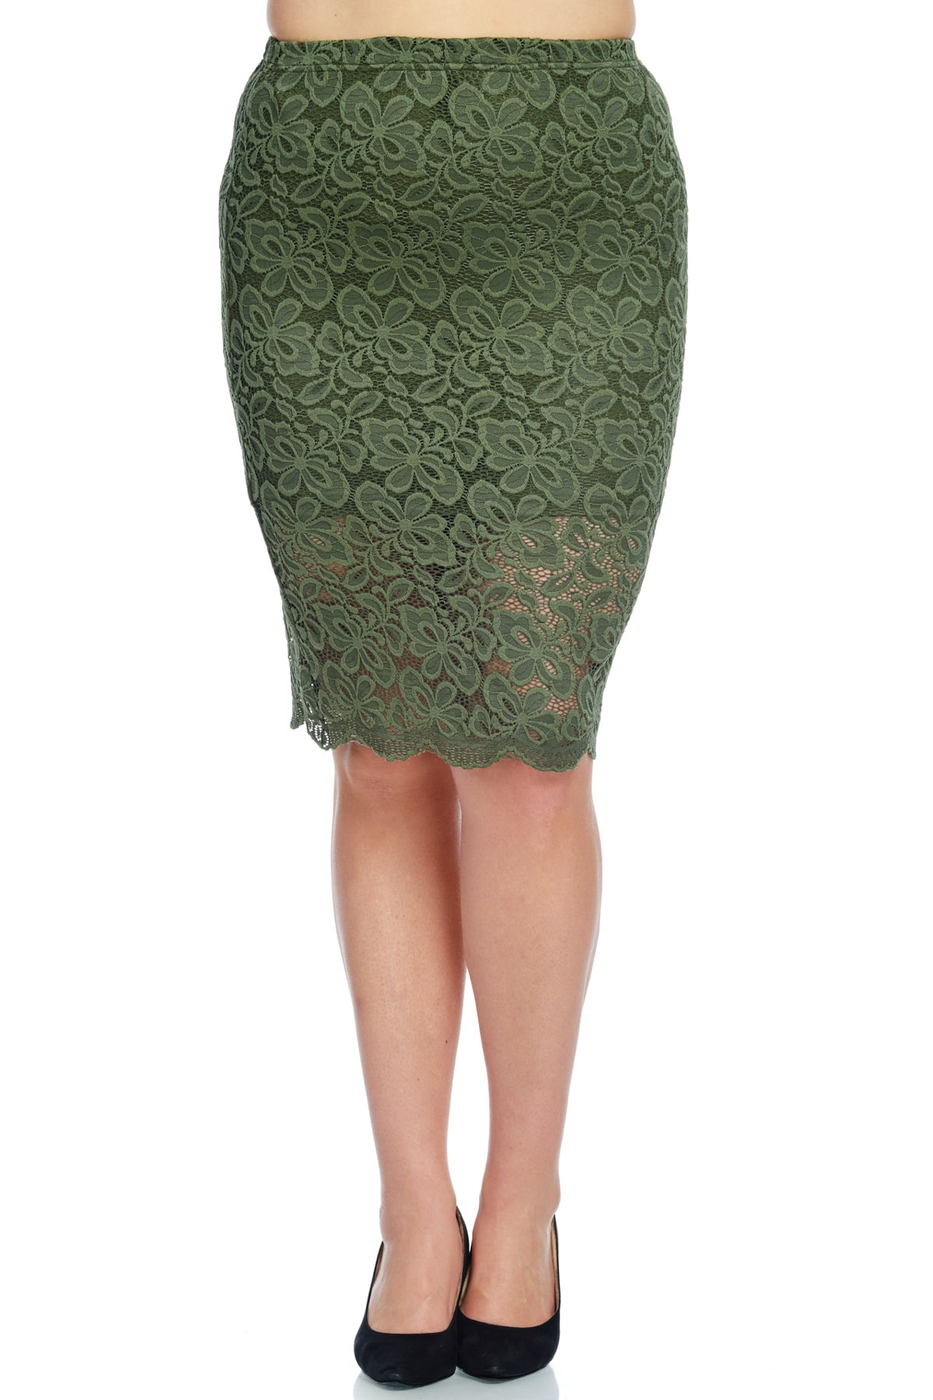 FLORAL LACE PLUS SKIRT - orangeshine.com